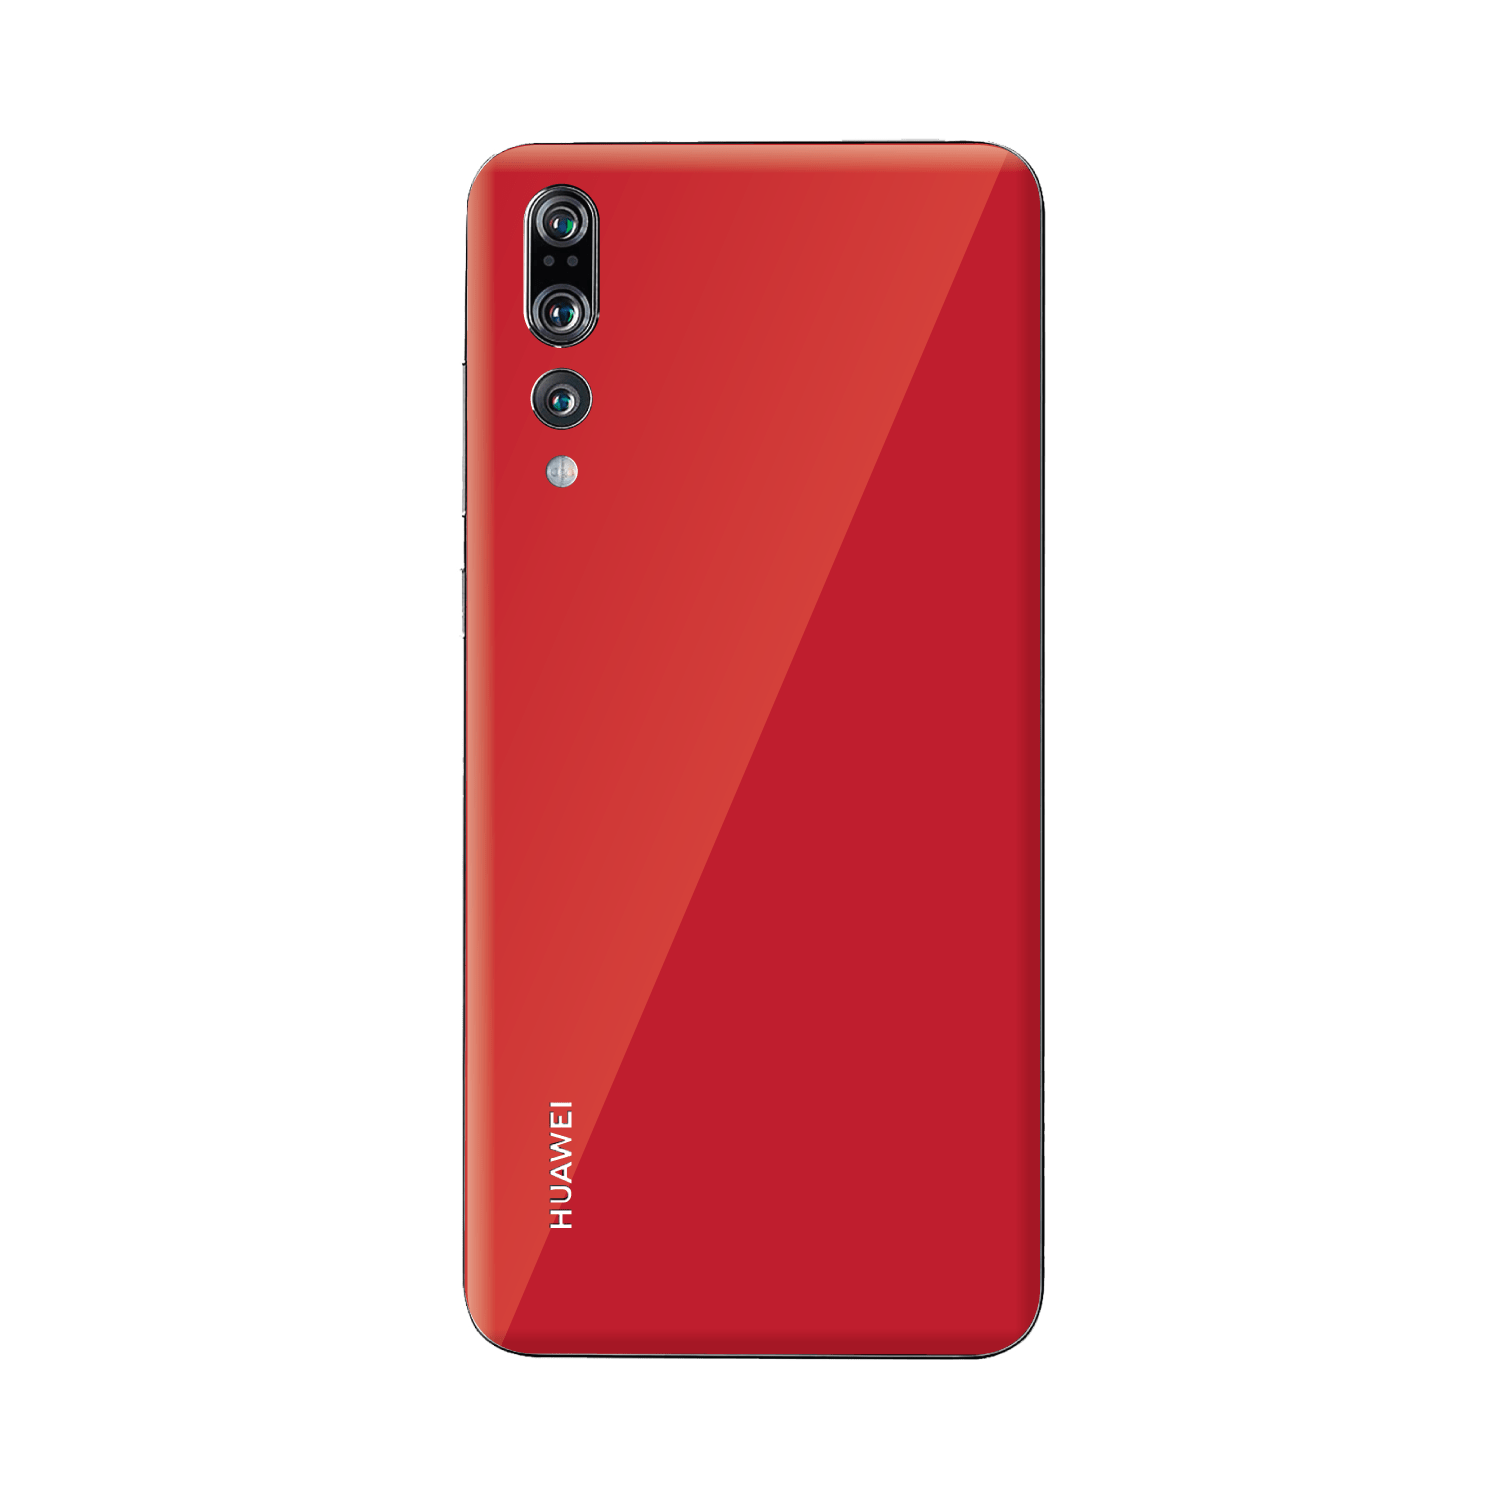 Gloss red skin for Huawei P20 Pro